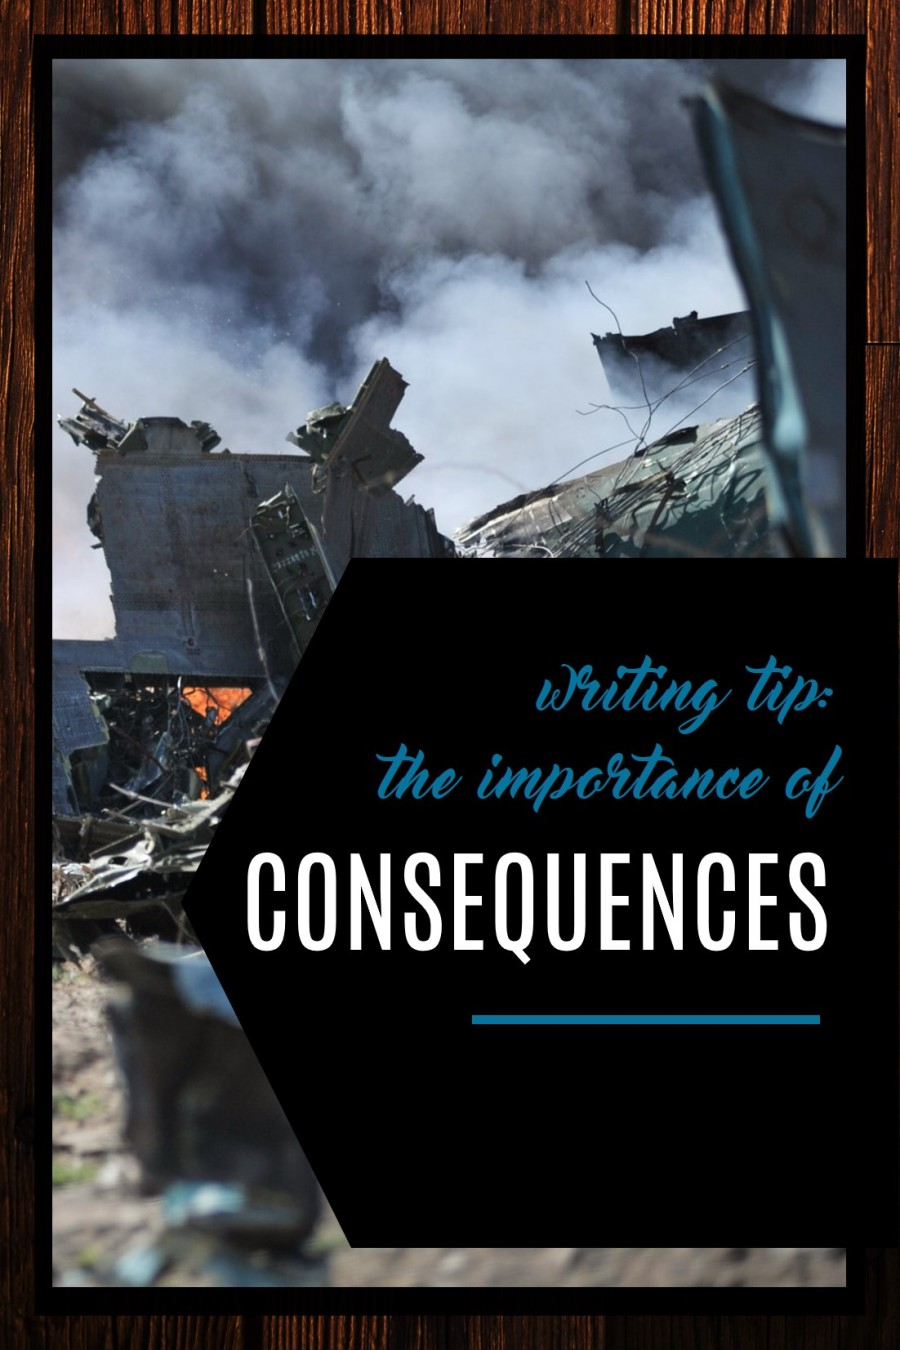 Using Consequences in your writig